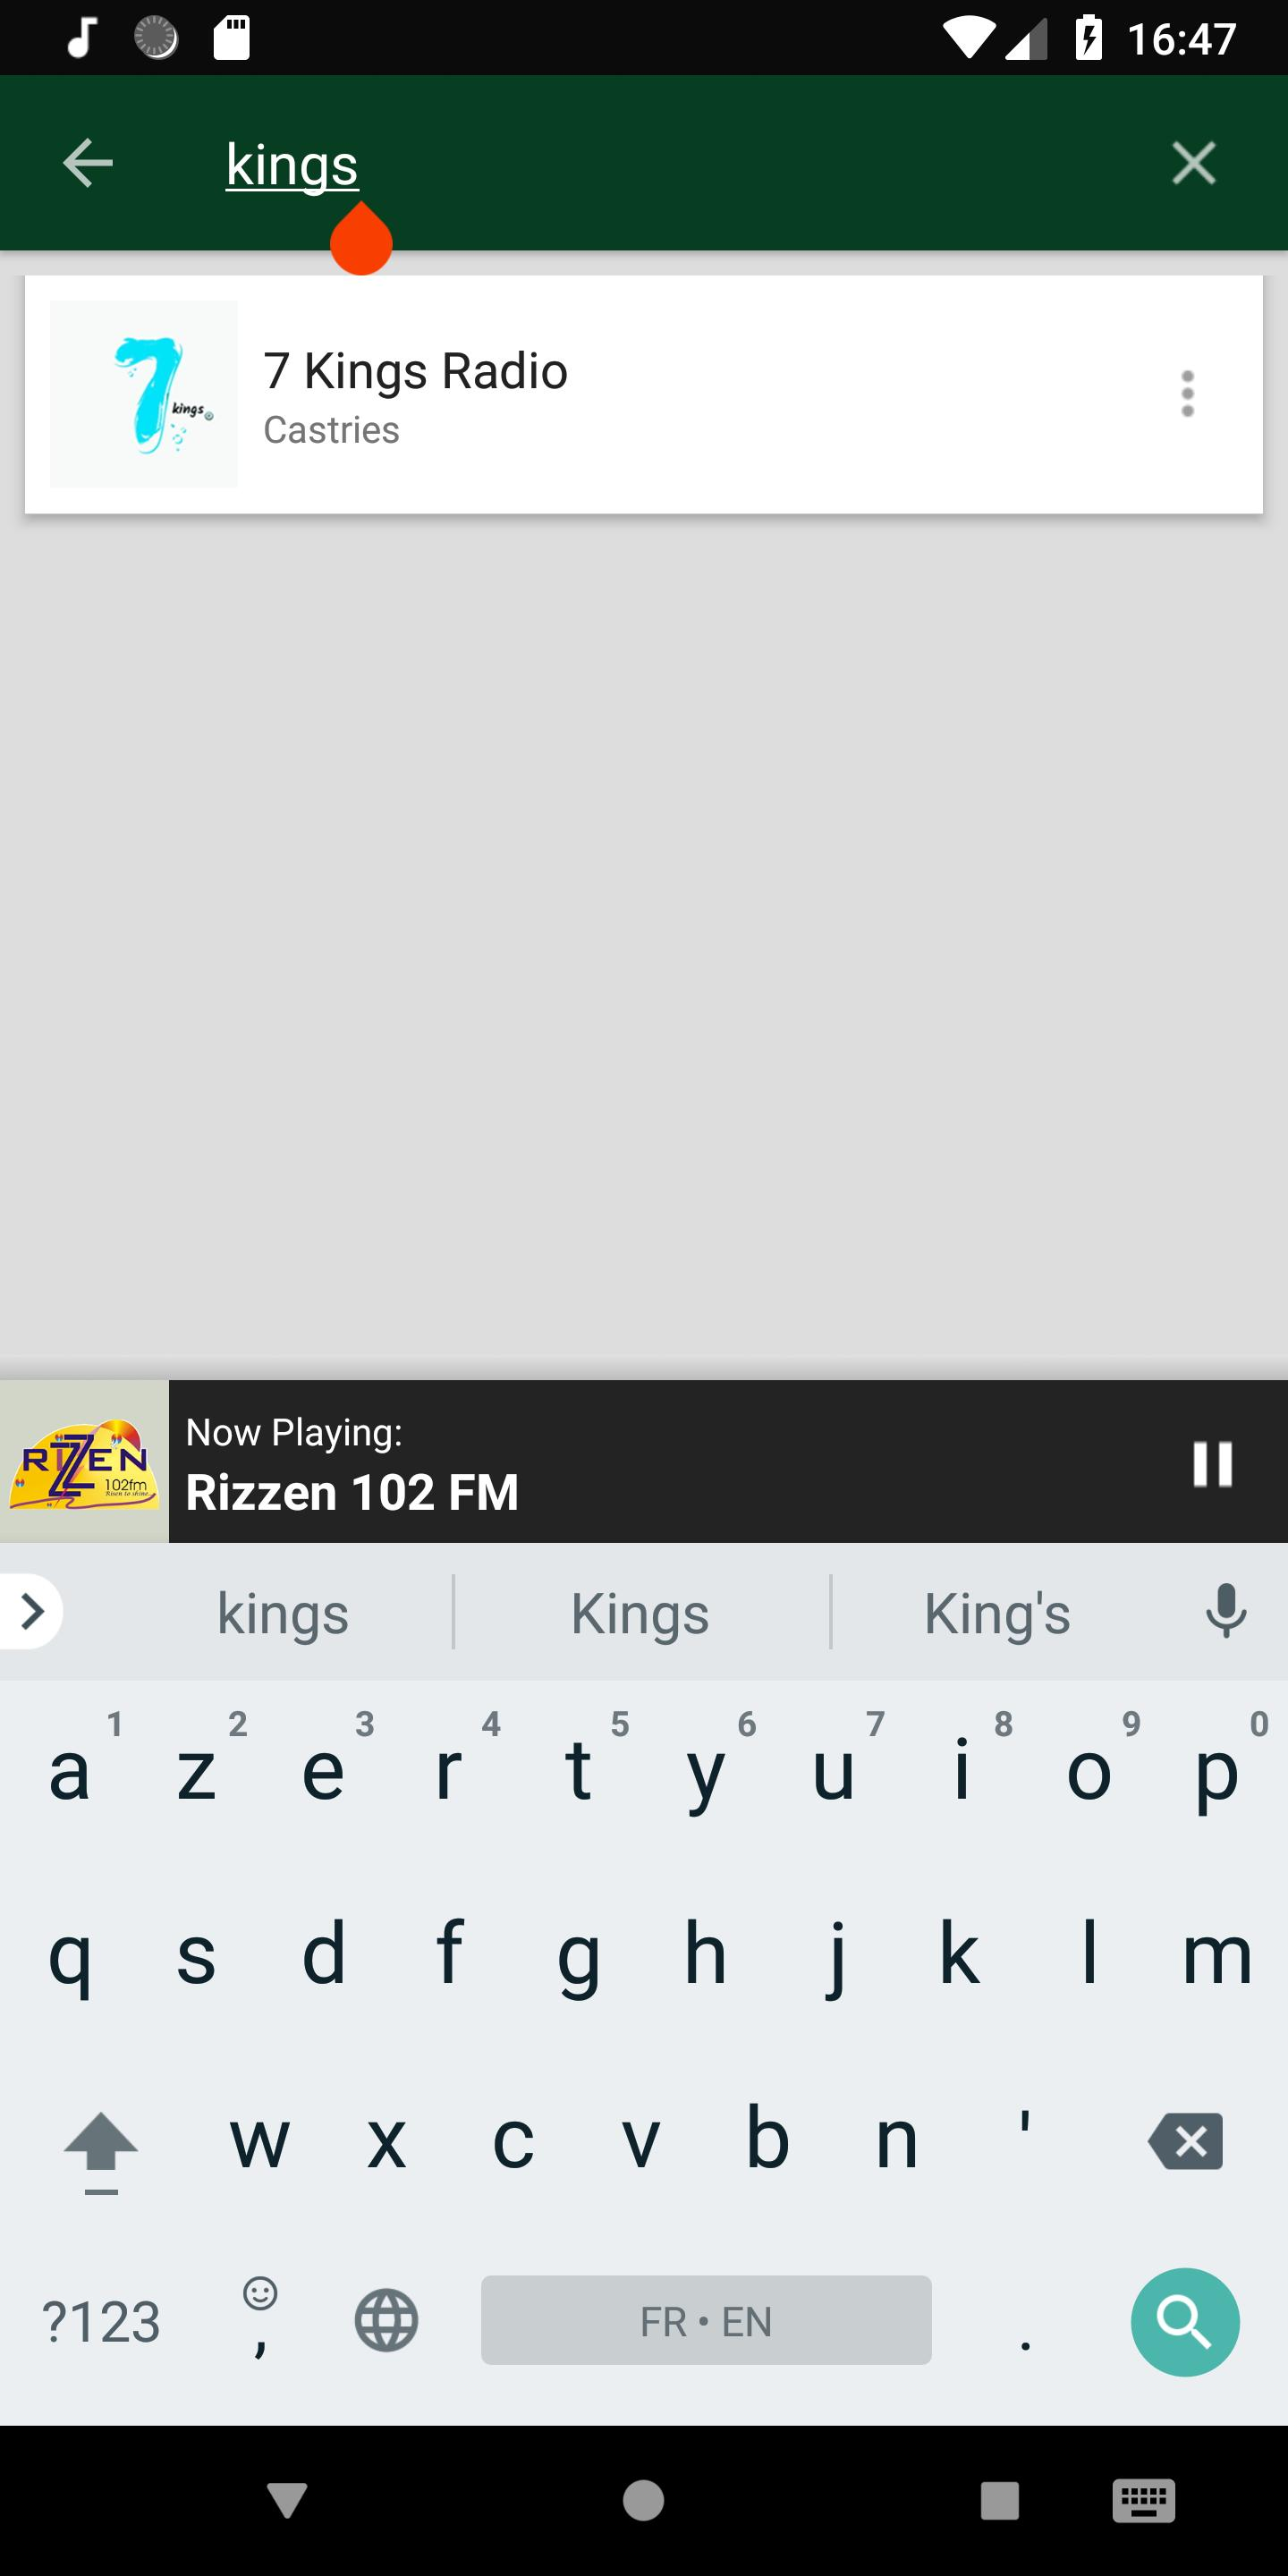 Saint Lucia Radio Stations for Android - APK Download